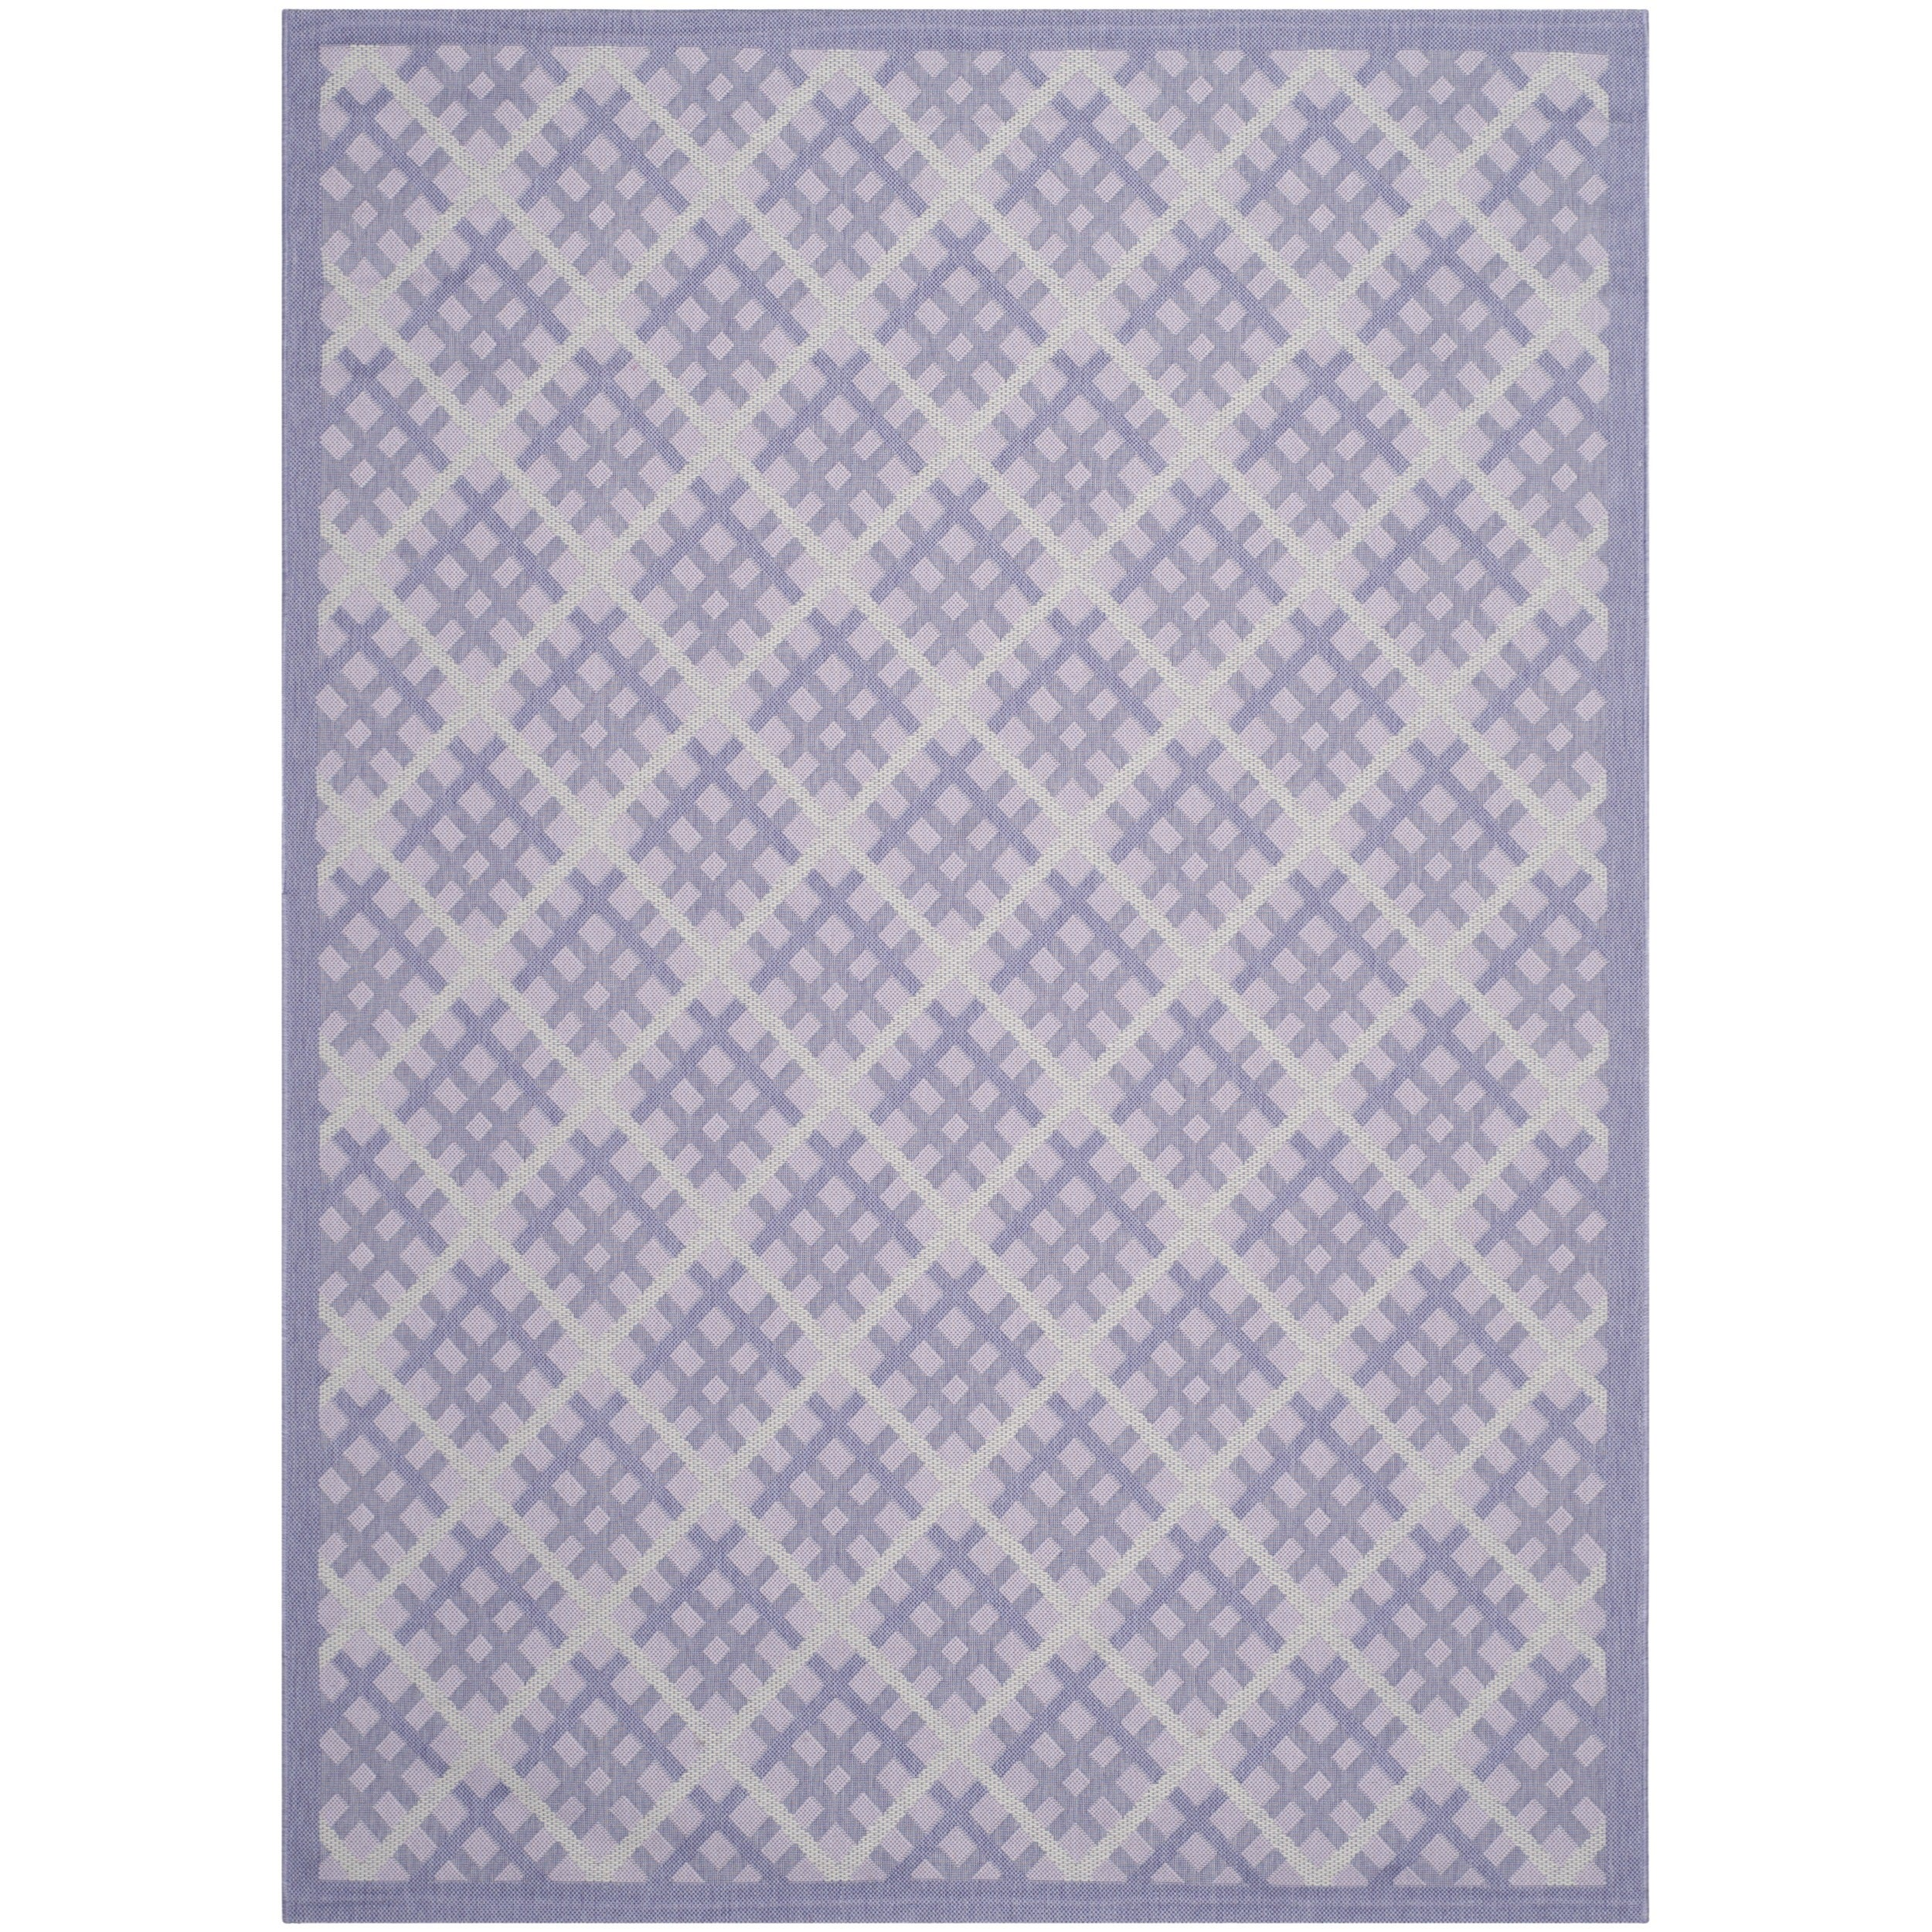 Safavieh Indoor/ Outdoor Courtyard Lilac/ Dark Lilac Rug (6'7 x 9'6) at Sears.com